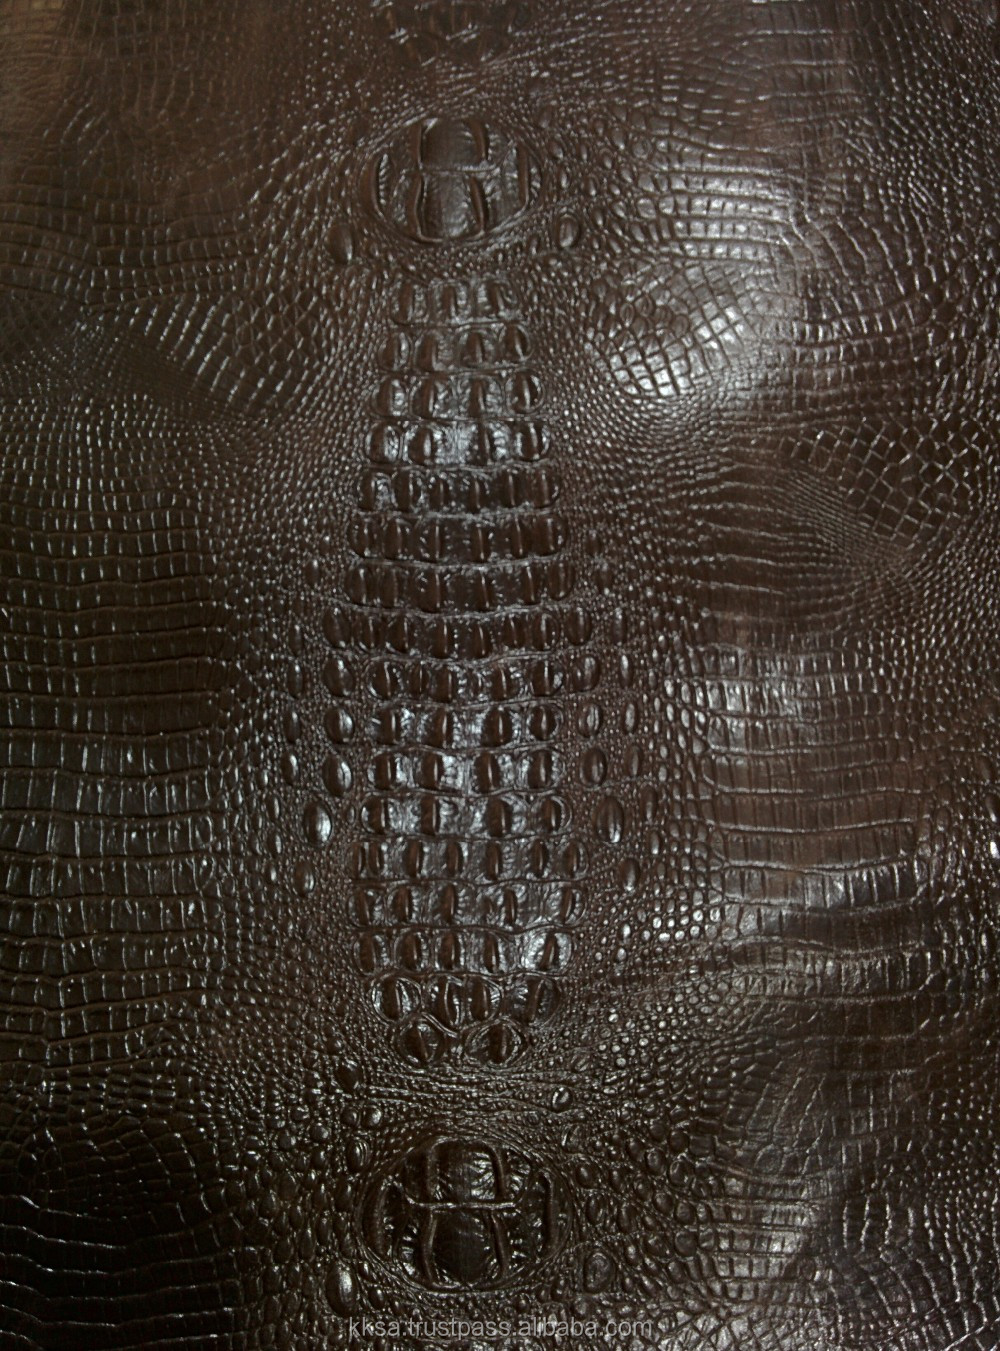 Cow Embossed Leather for Leather Goods - Black, Dark Brown, Tan, Teal, Fanta